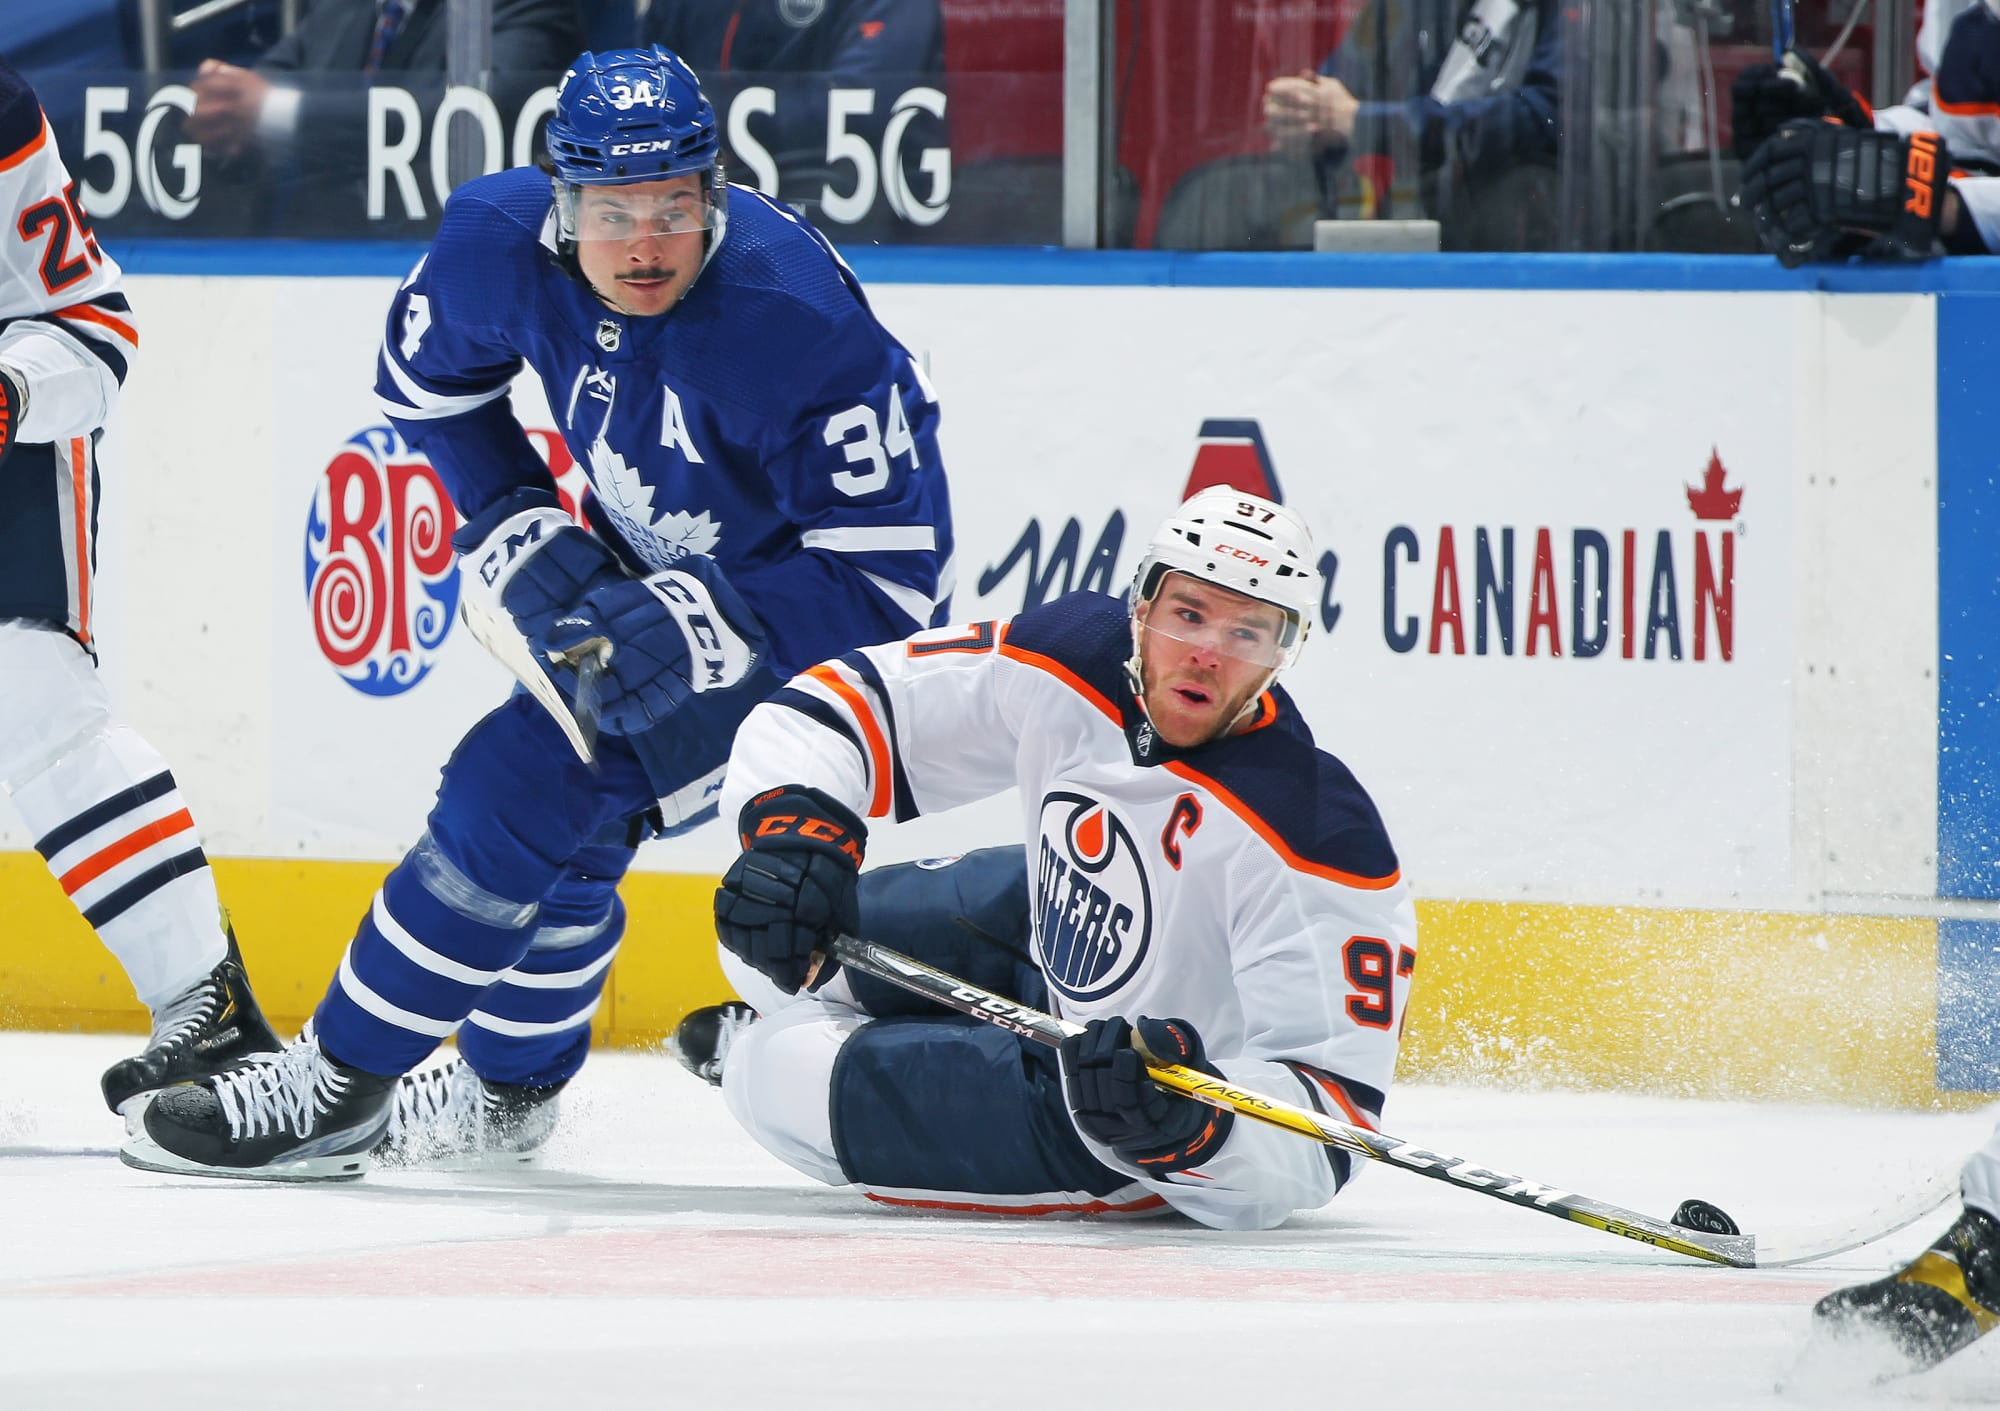 The Toronto Maple Leafs Do Not Have An Easy Path to the Semis